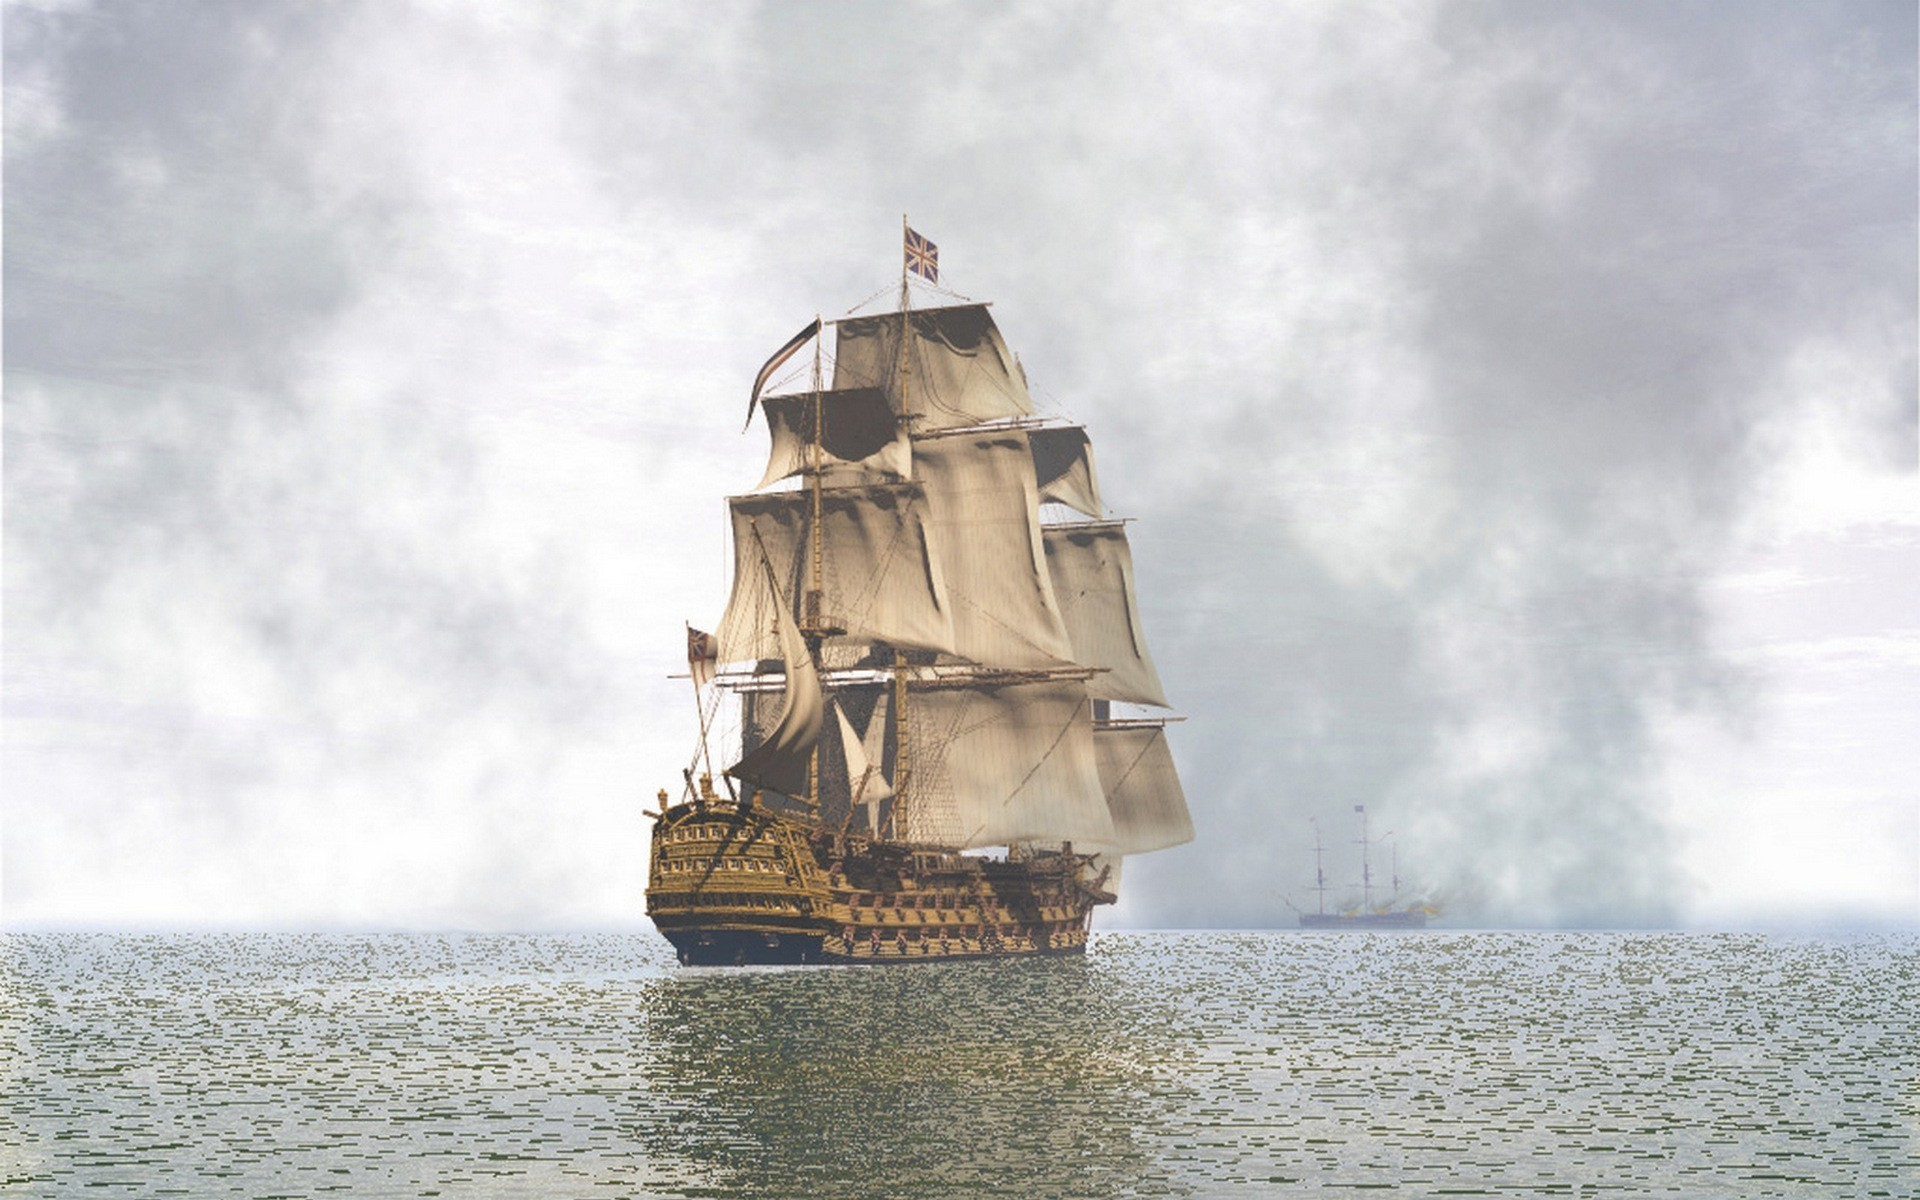 Res: 1920x1200, Tall Ship  Wallpapers, 16:10 Desktop Backgrounds, Free Images  Download | Akspic